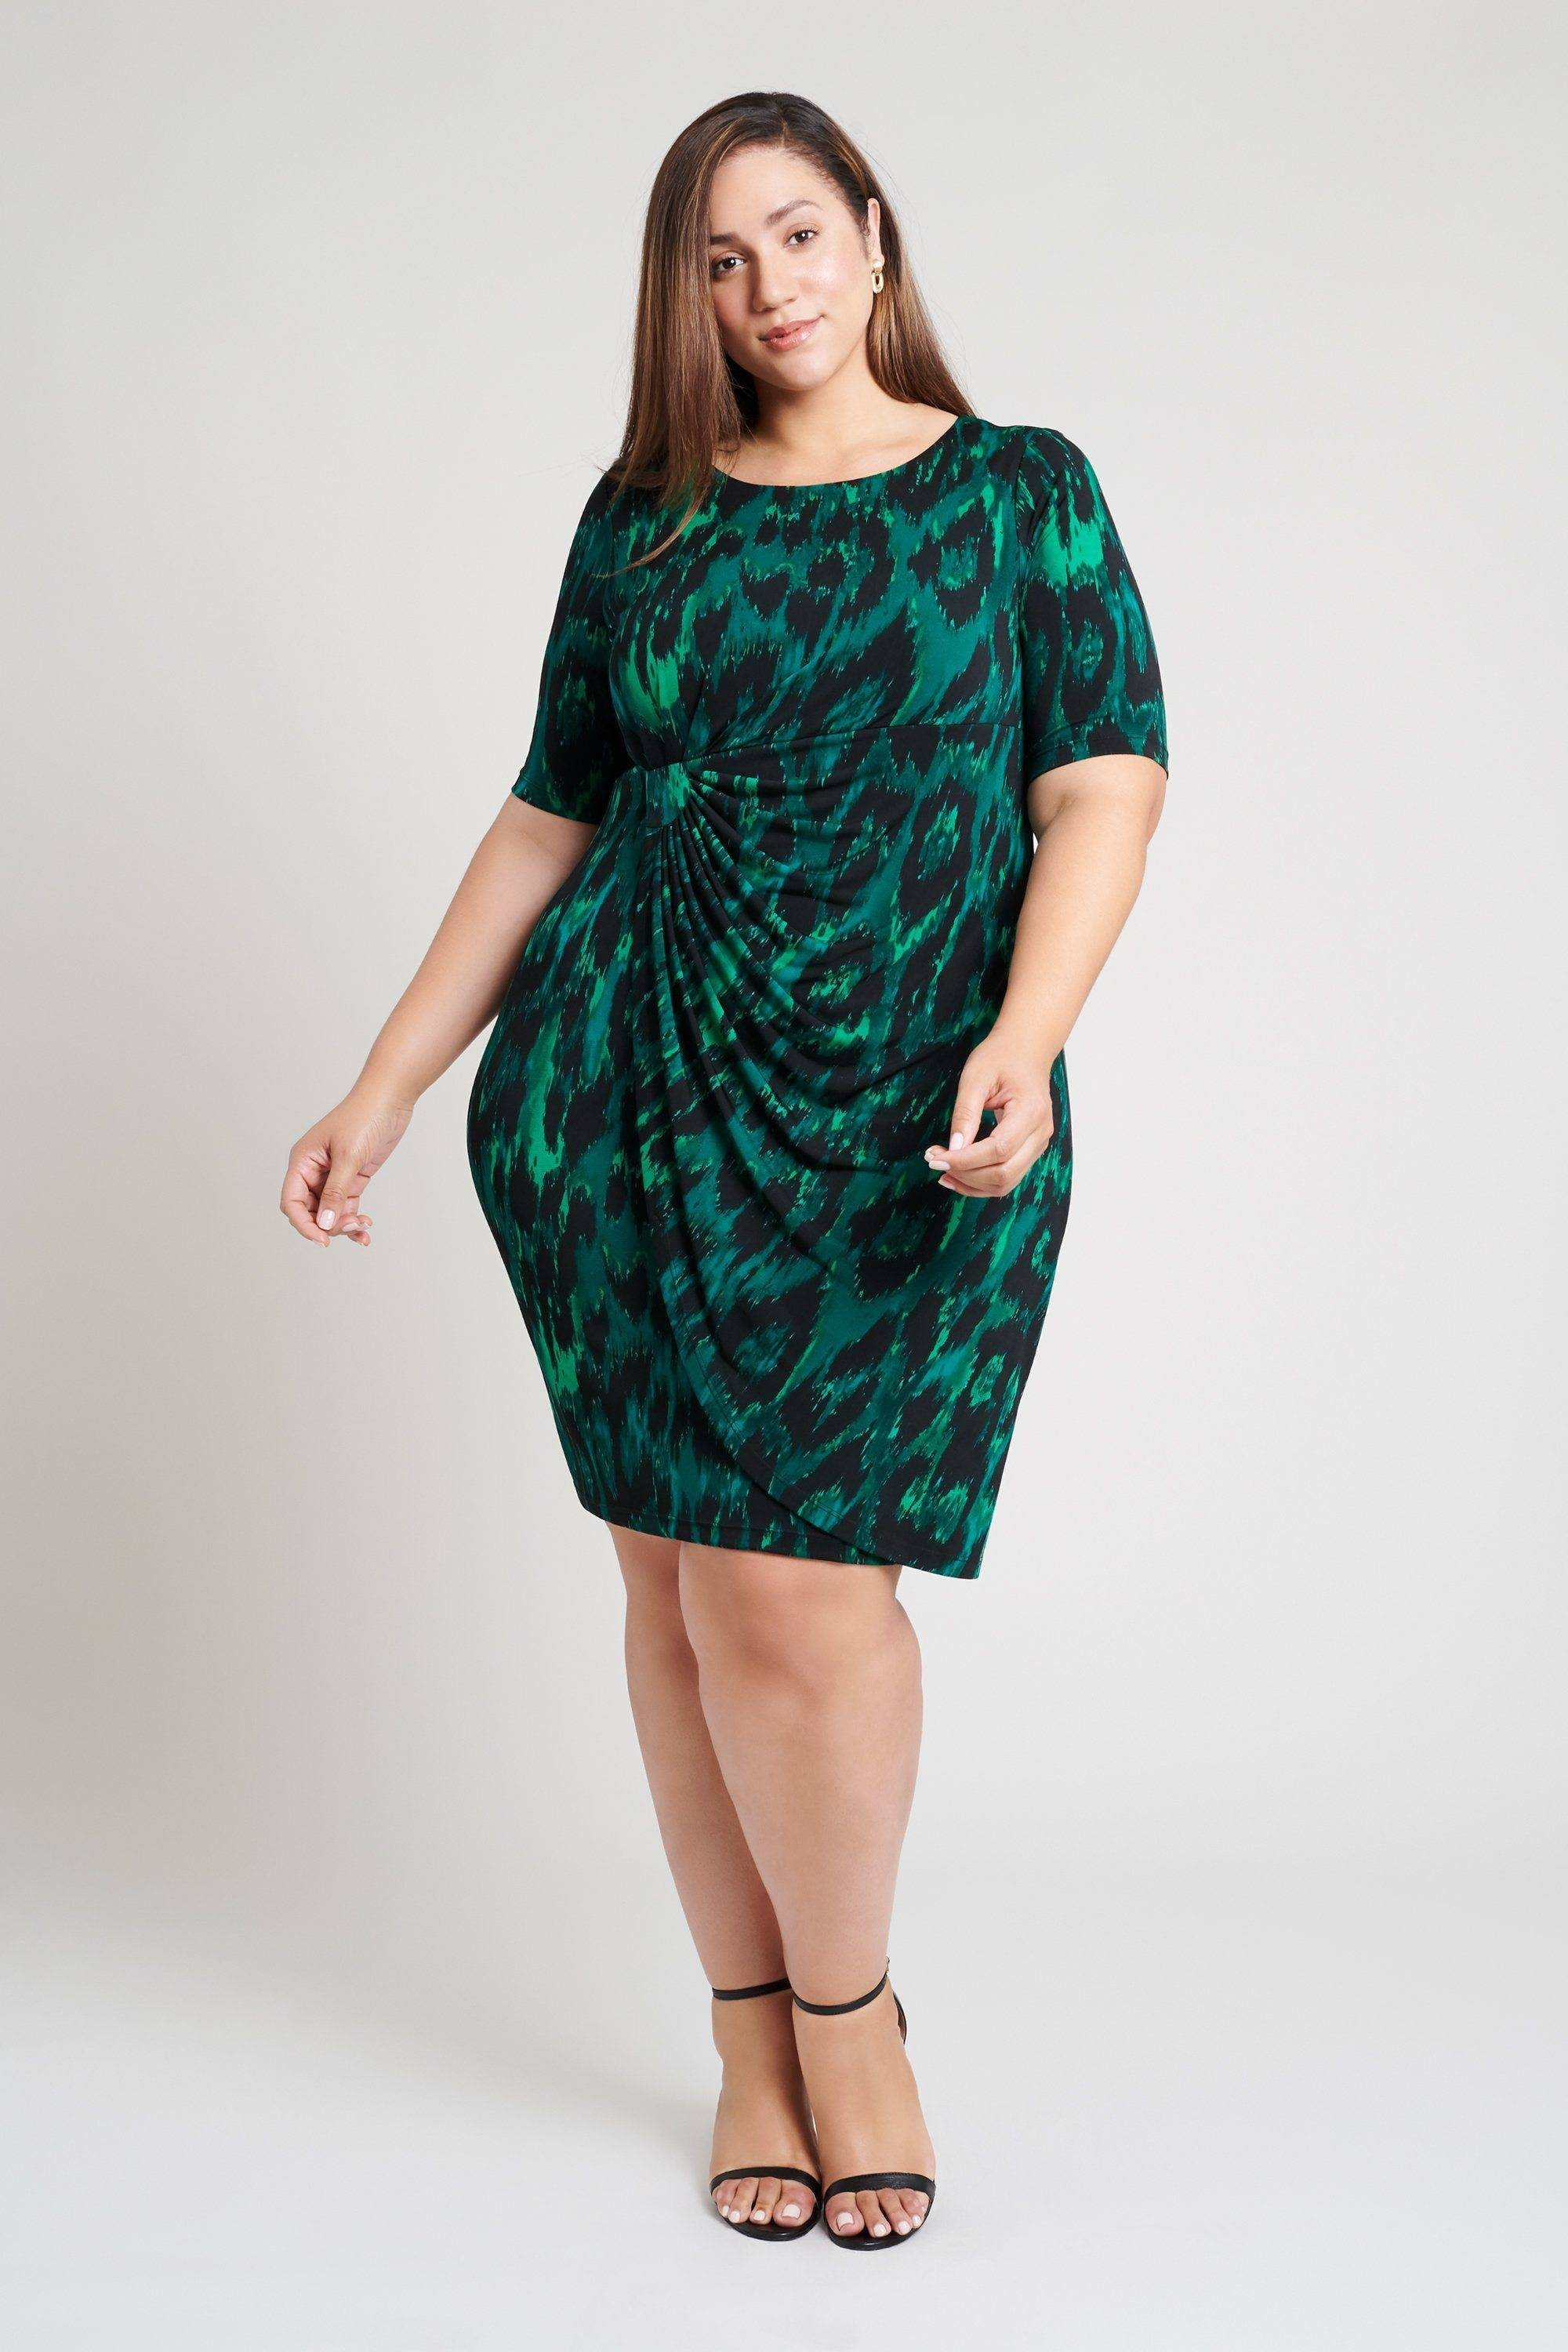 animal-print-green-dress-plus-size-hunter-jade-emerald-womens-connected-apparel